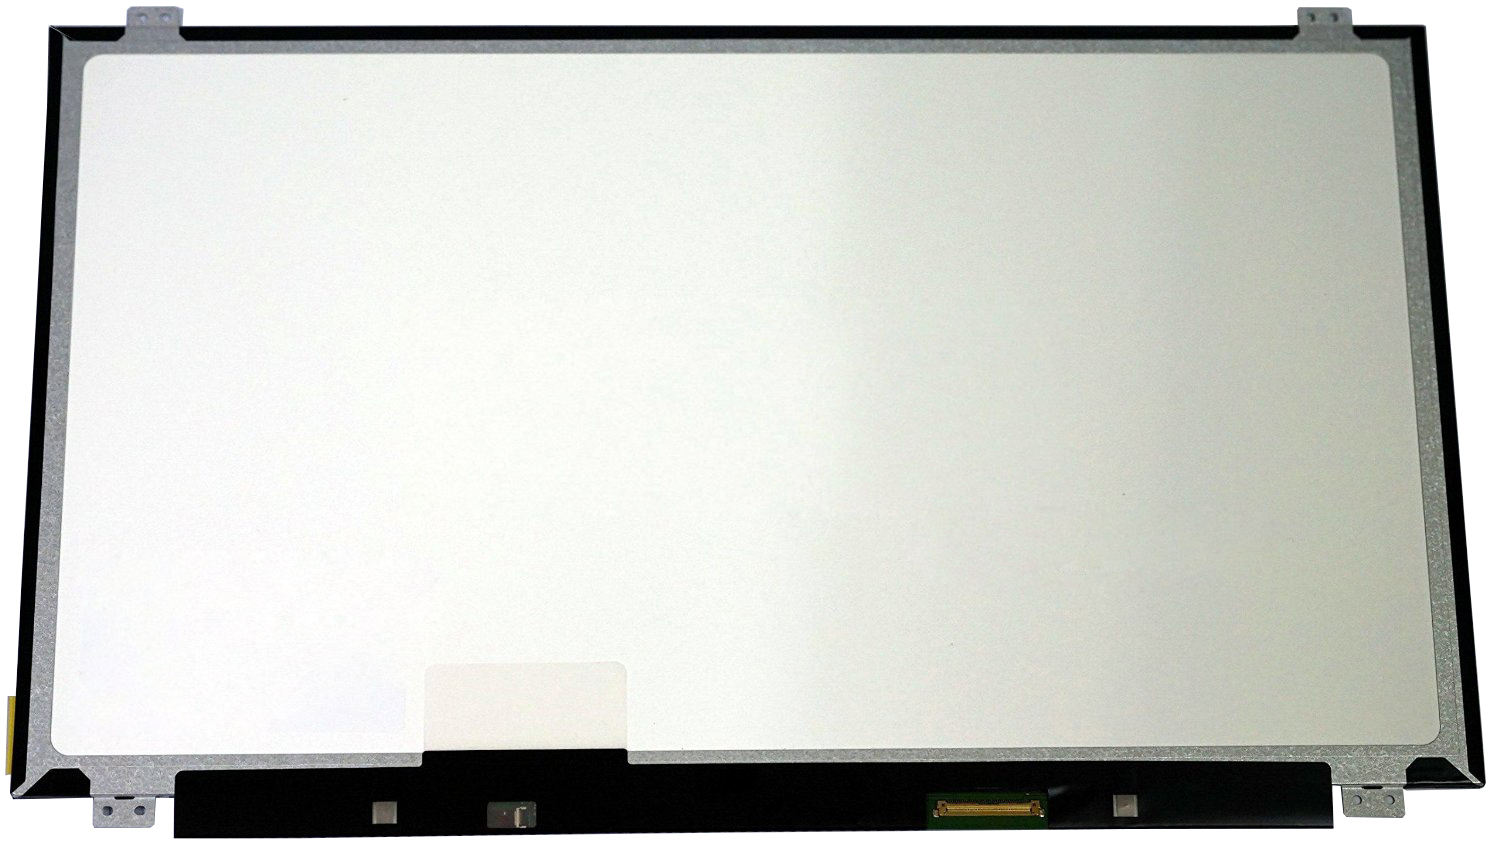 QuYing Laptop LCD Screen for Acer ASPIRE V5-123 SERIES (11.6 inch 1366x768 30pin Top and Bottom Brackets N) quying laptop lcd screen for acer extensa 5235 as5551 series 15 6 inch 1366x768 40pin tk